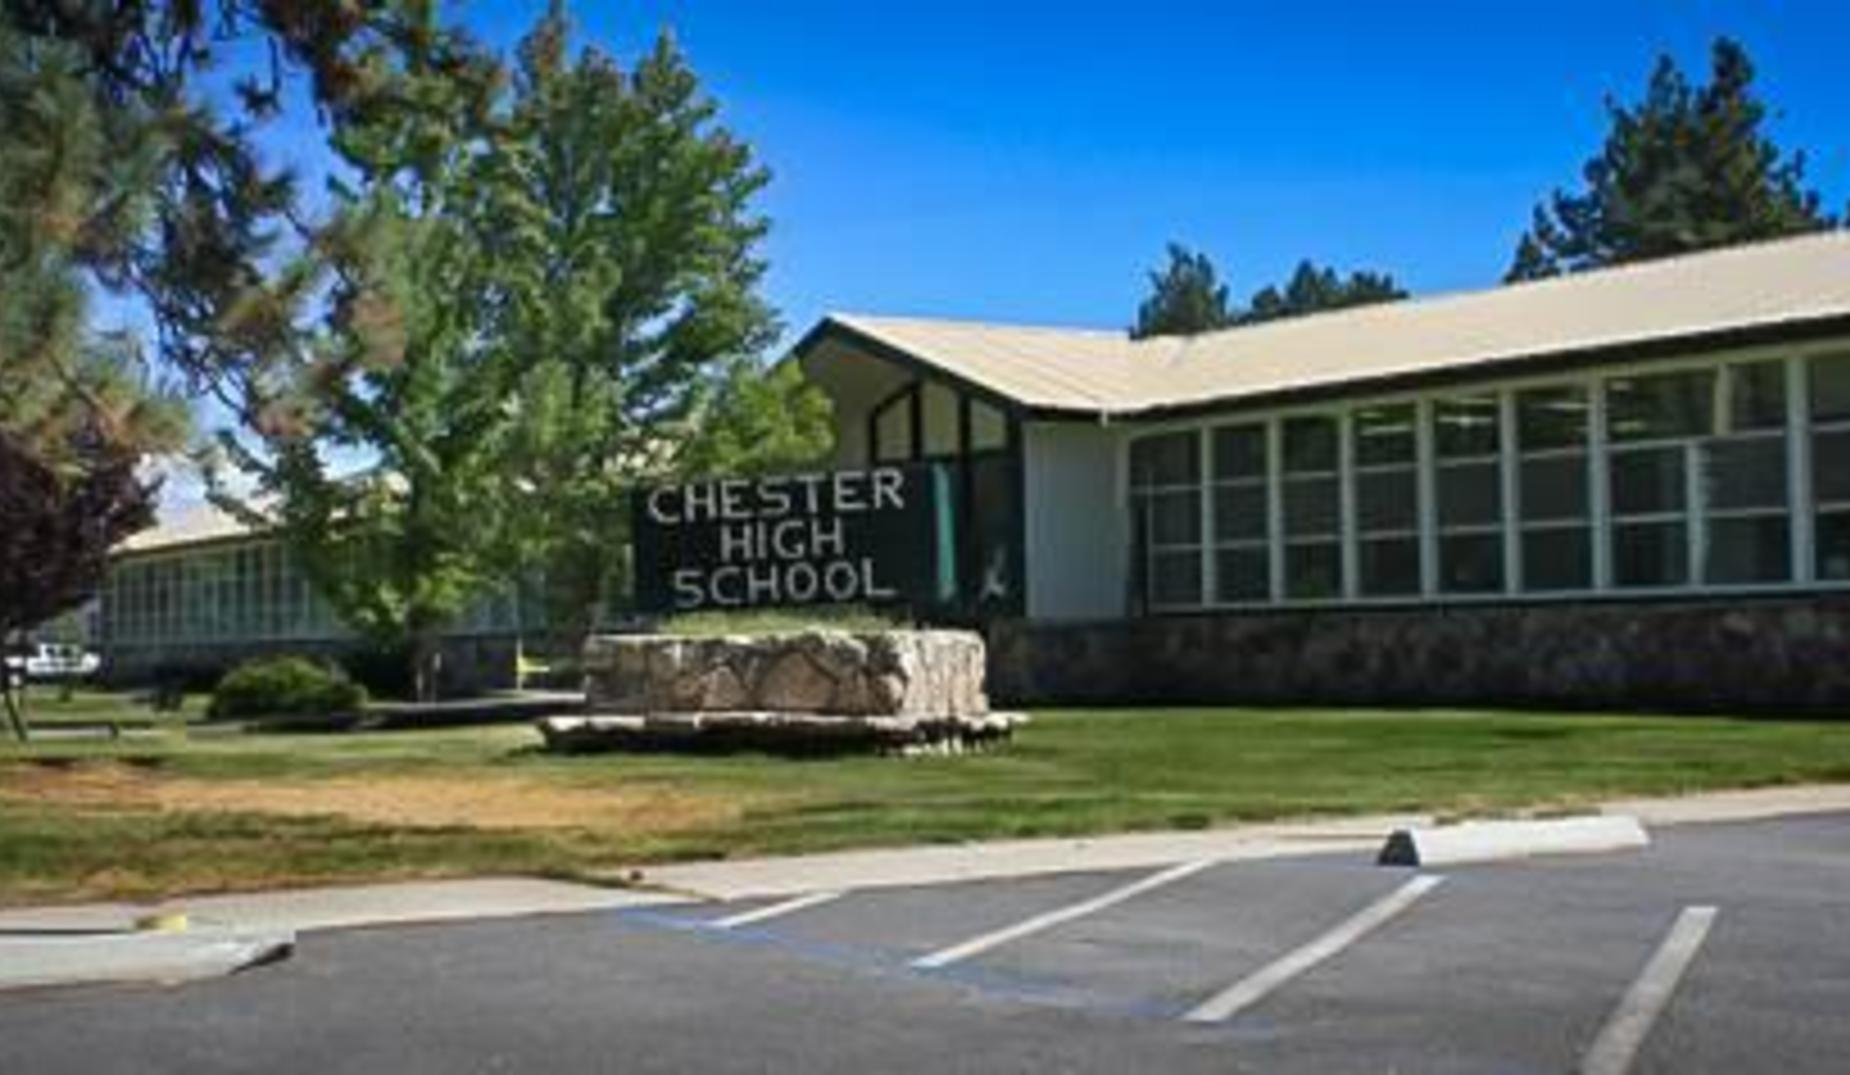 The Chester High School sign on the front lawn